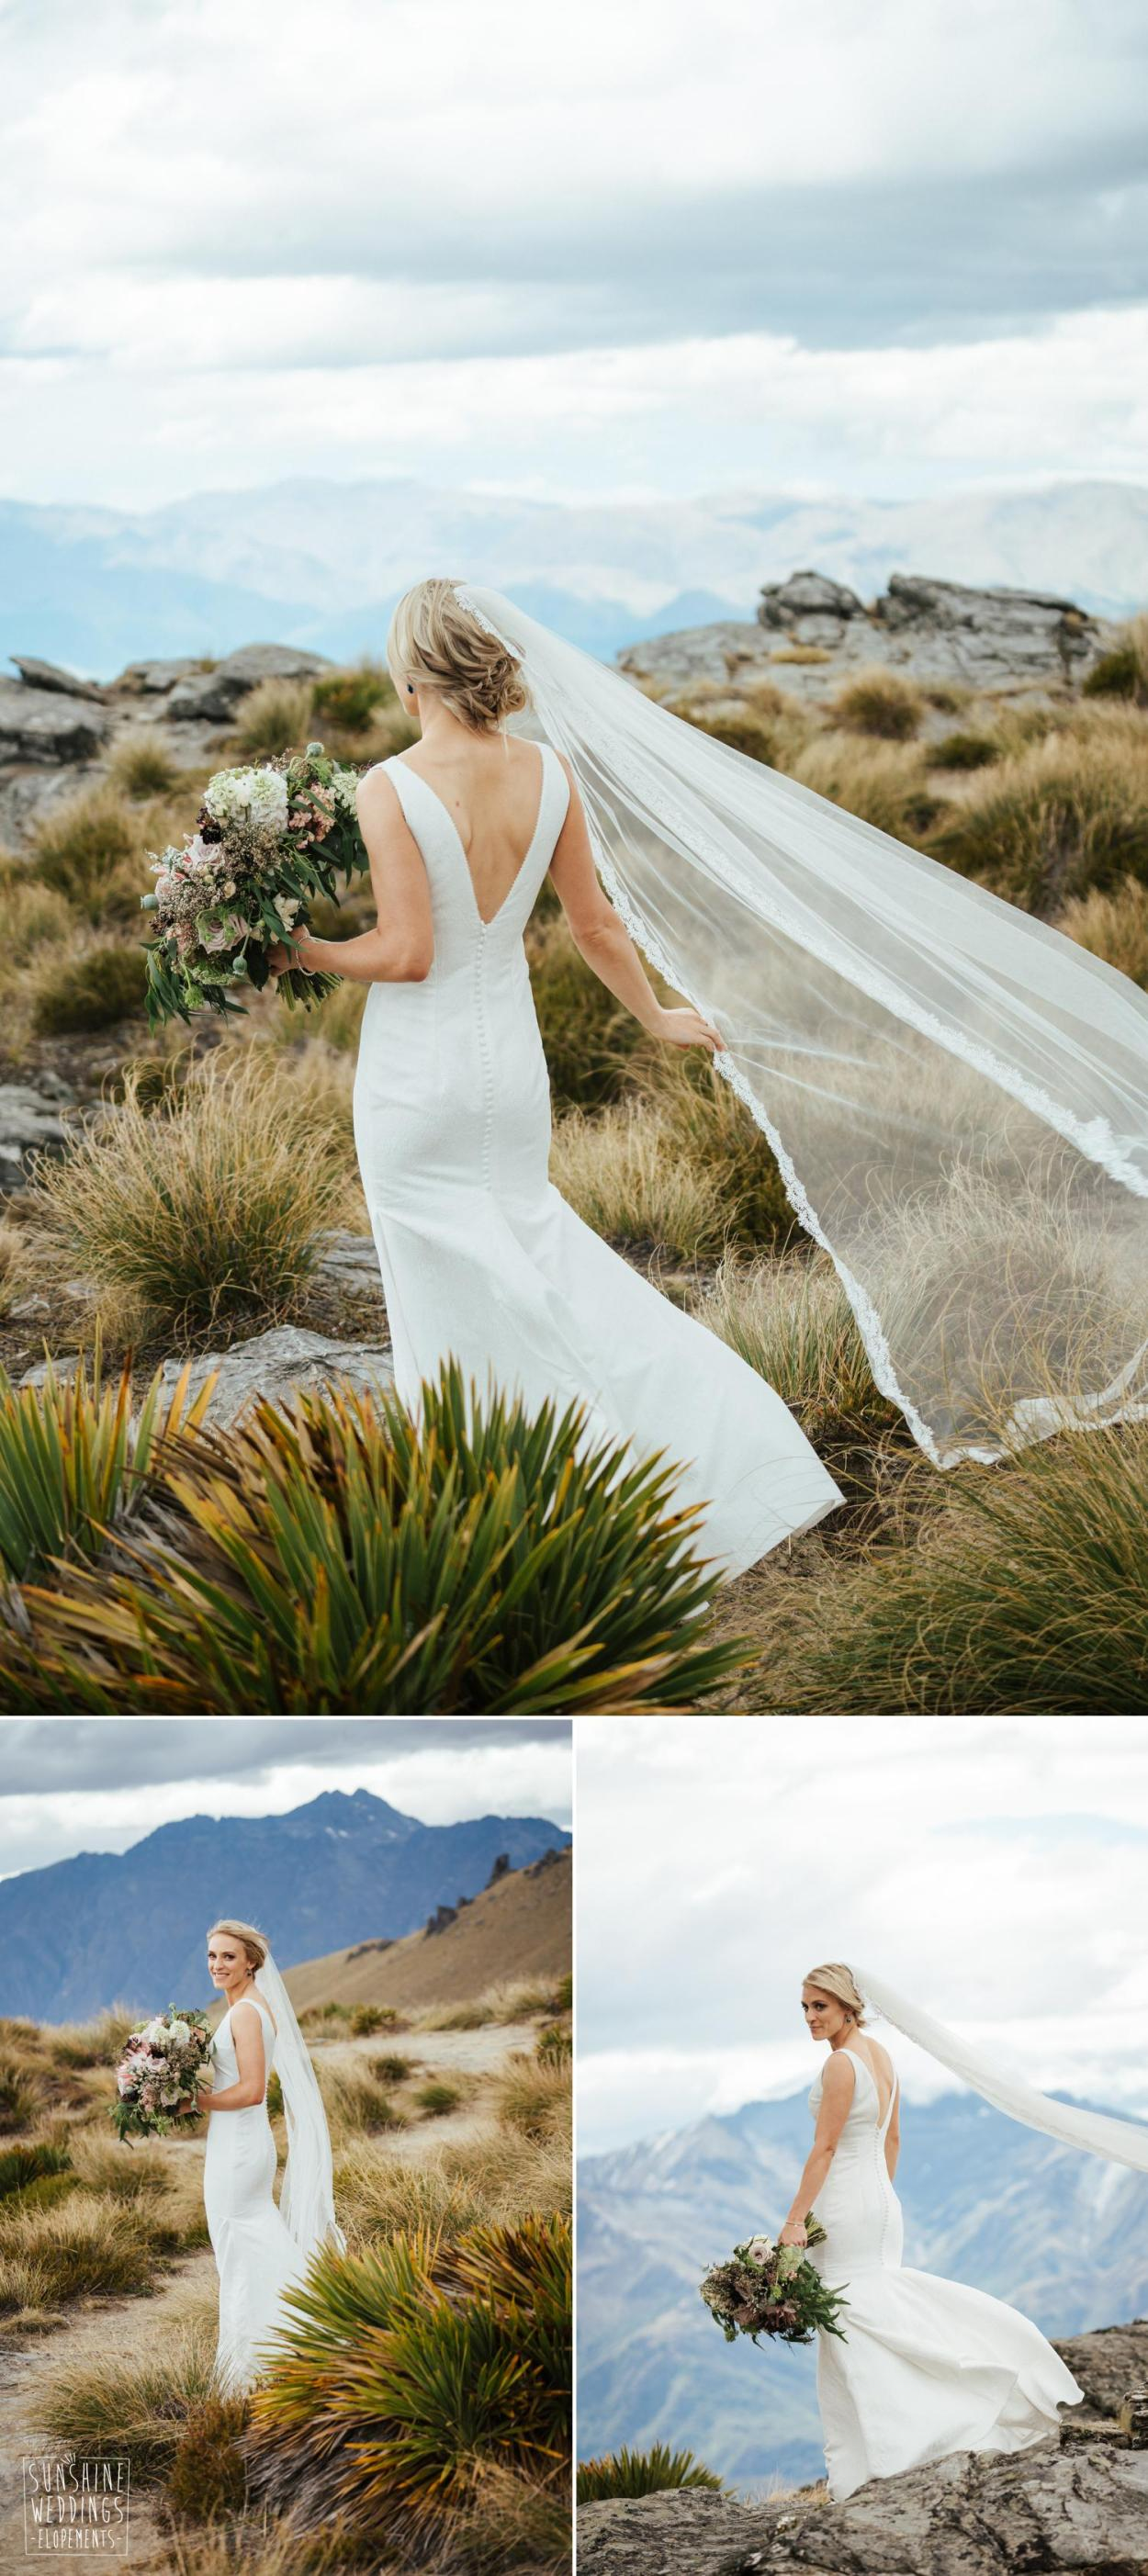 Cecil Peak mountain wedding